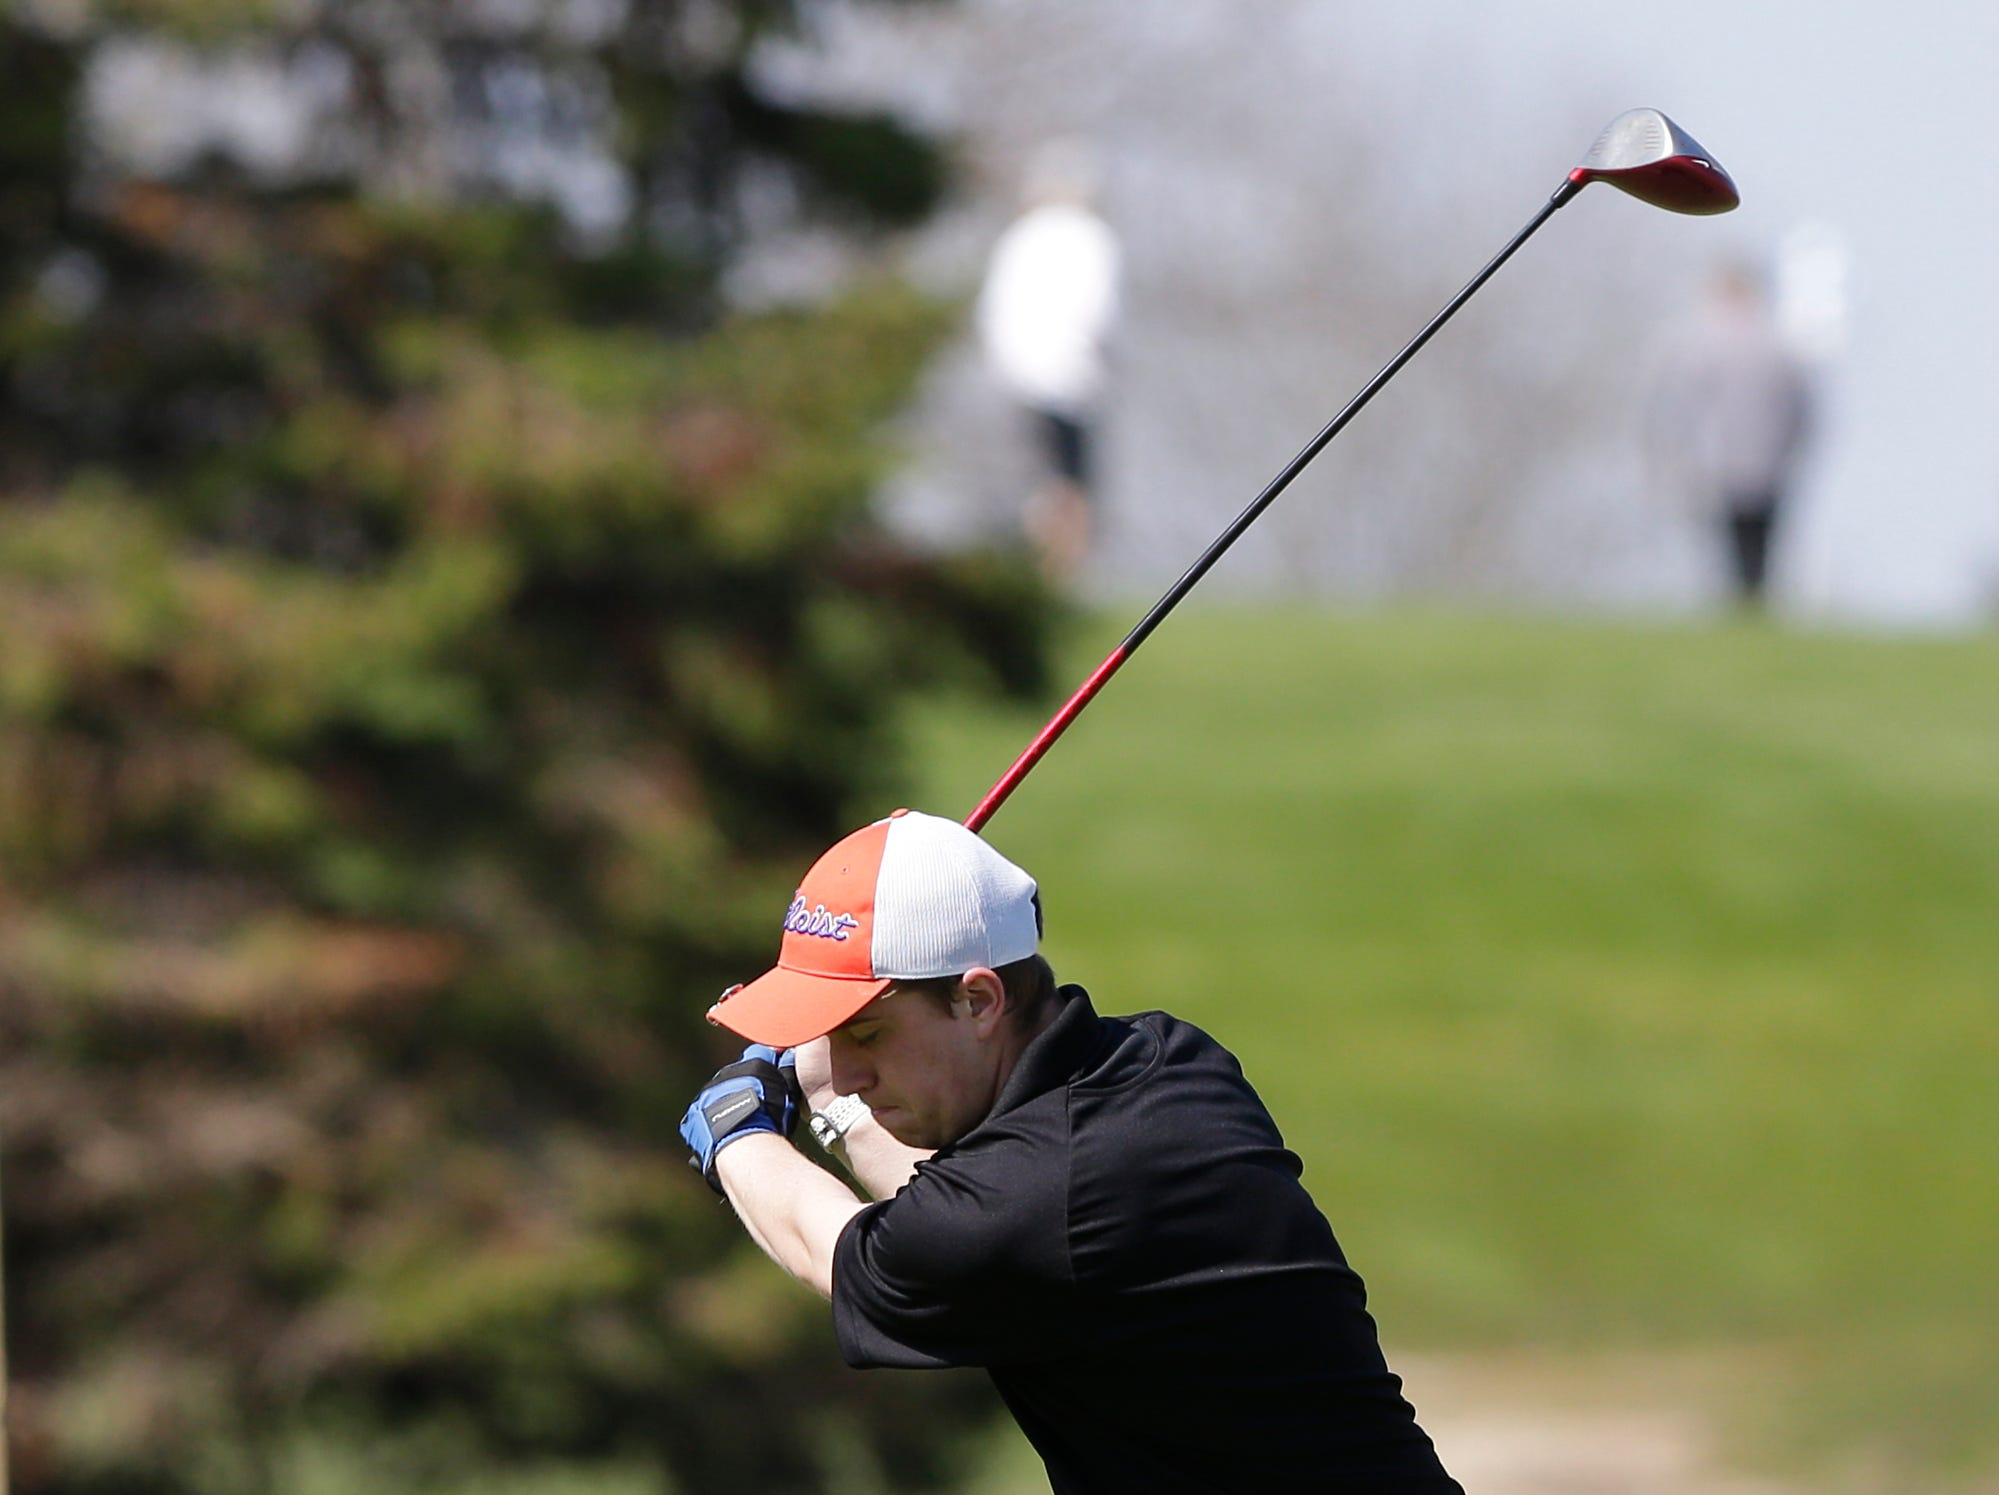 Jack Porter of Appleton West High School competes in the Fond du Lac High School golf invite Saturday, May 4, 2019 at Rolling Meadows Golf Course in Fond du Lac, Wis. Doug Raflik/USA TODAY NETWORK-Wisconsin